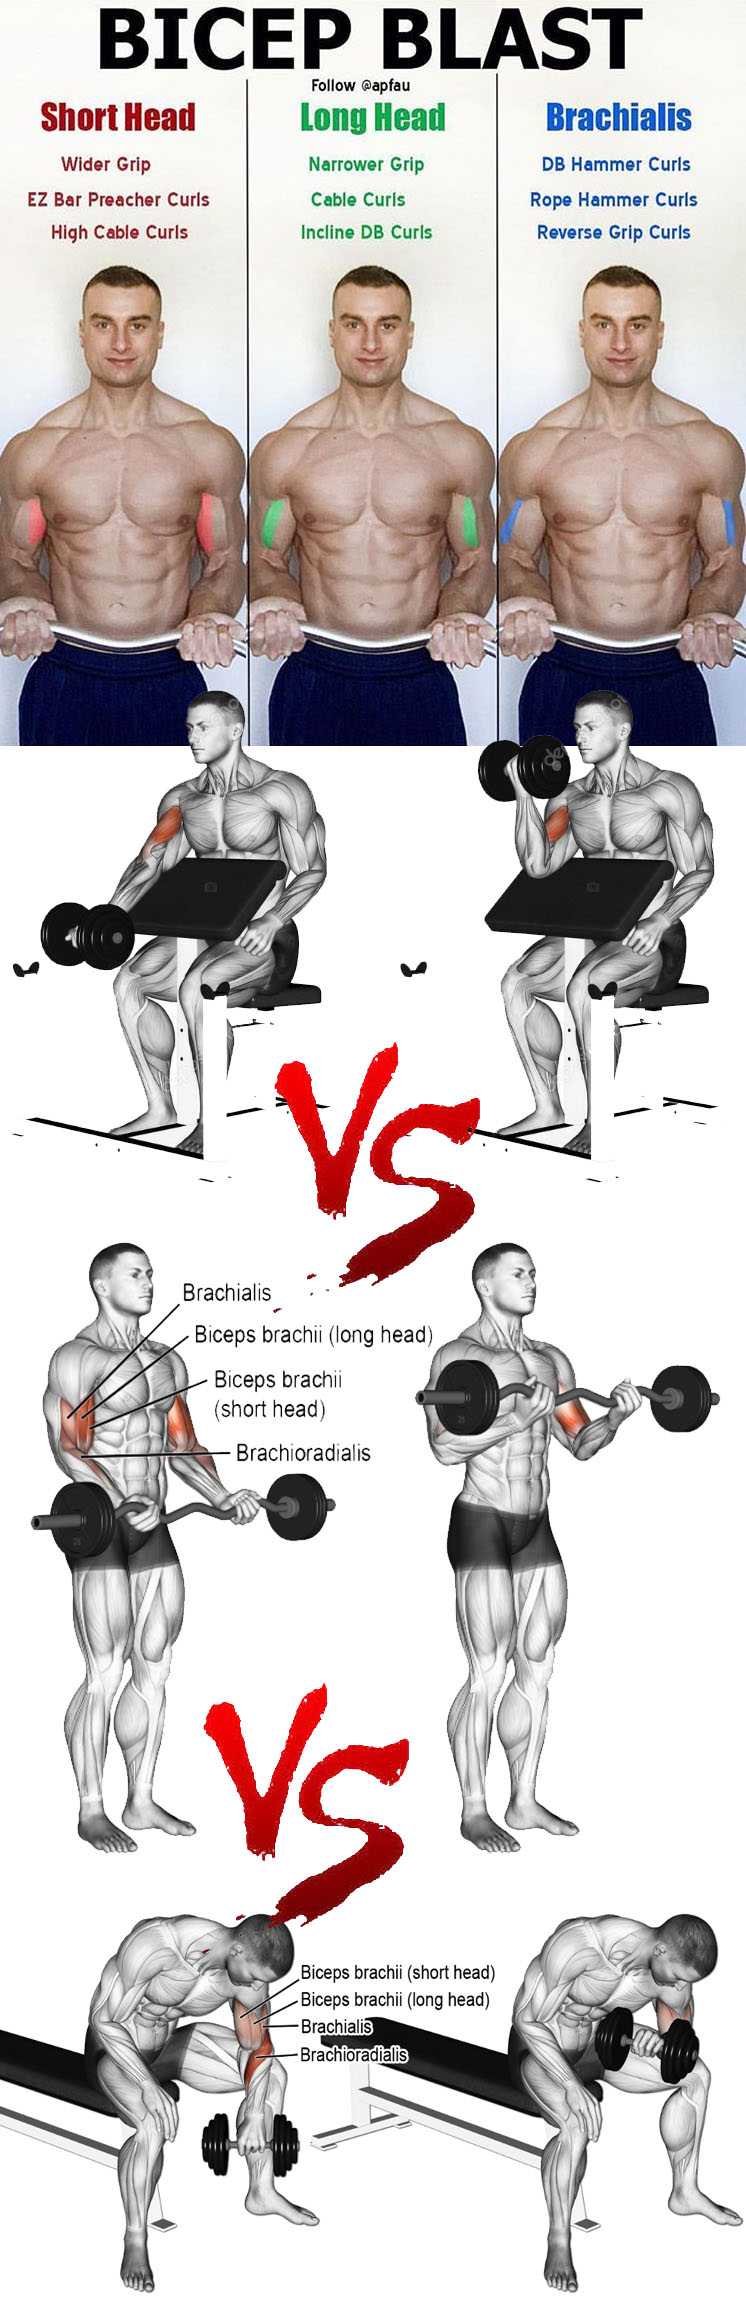 HOW TO BICEPS BLAST